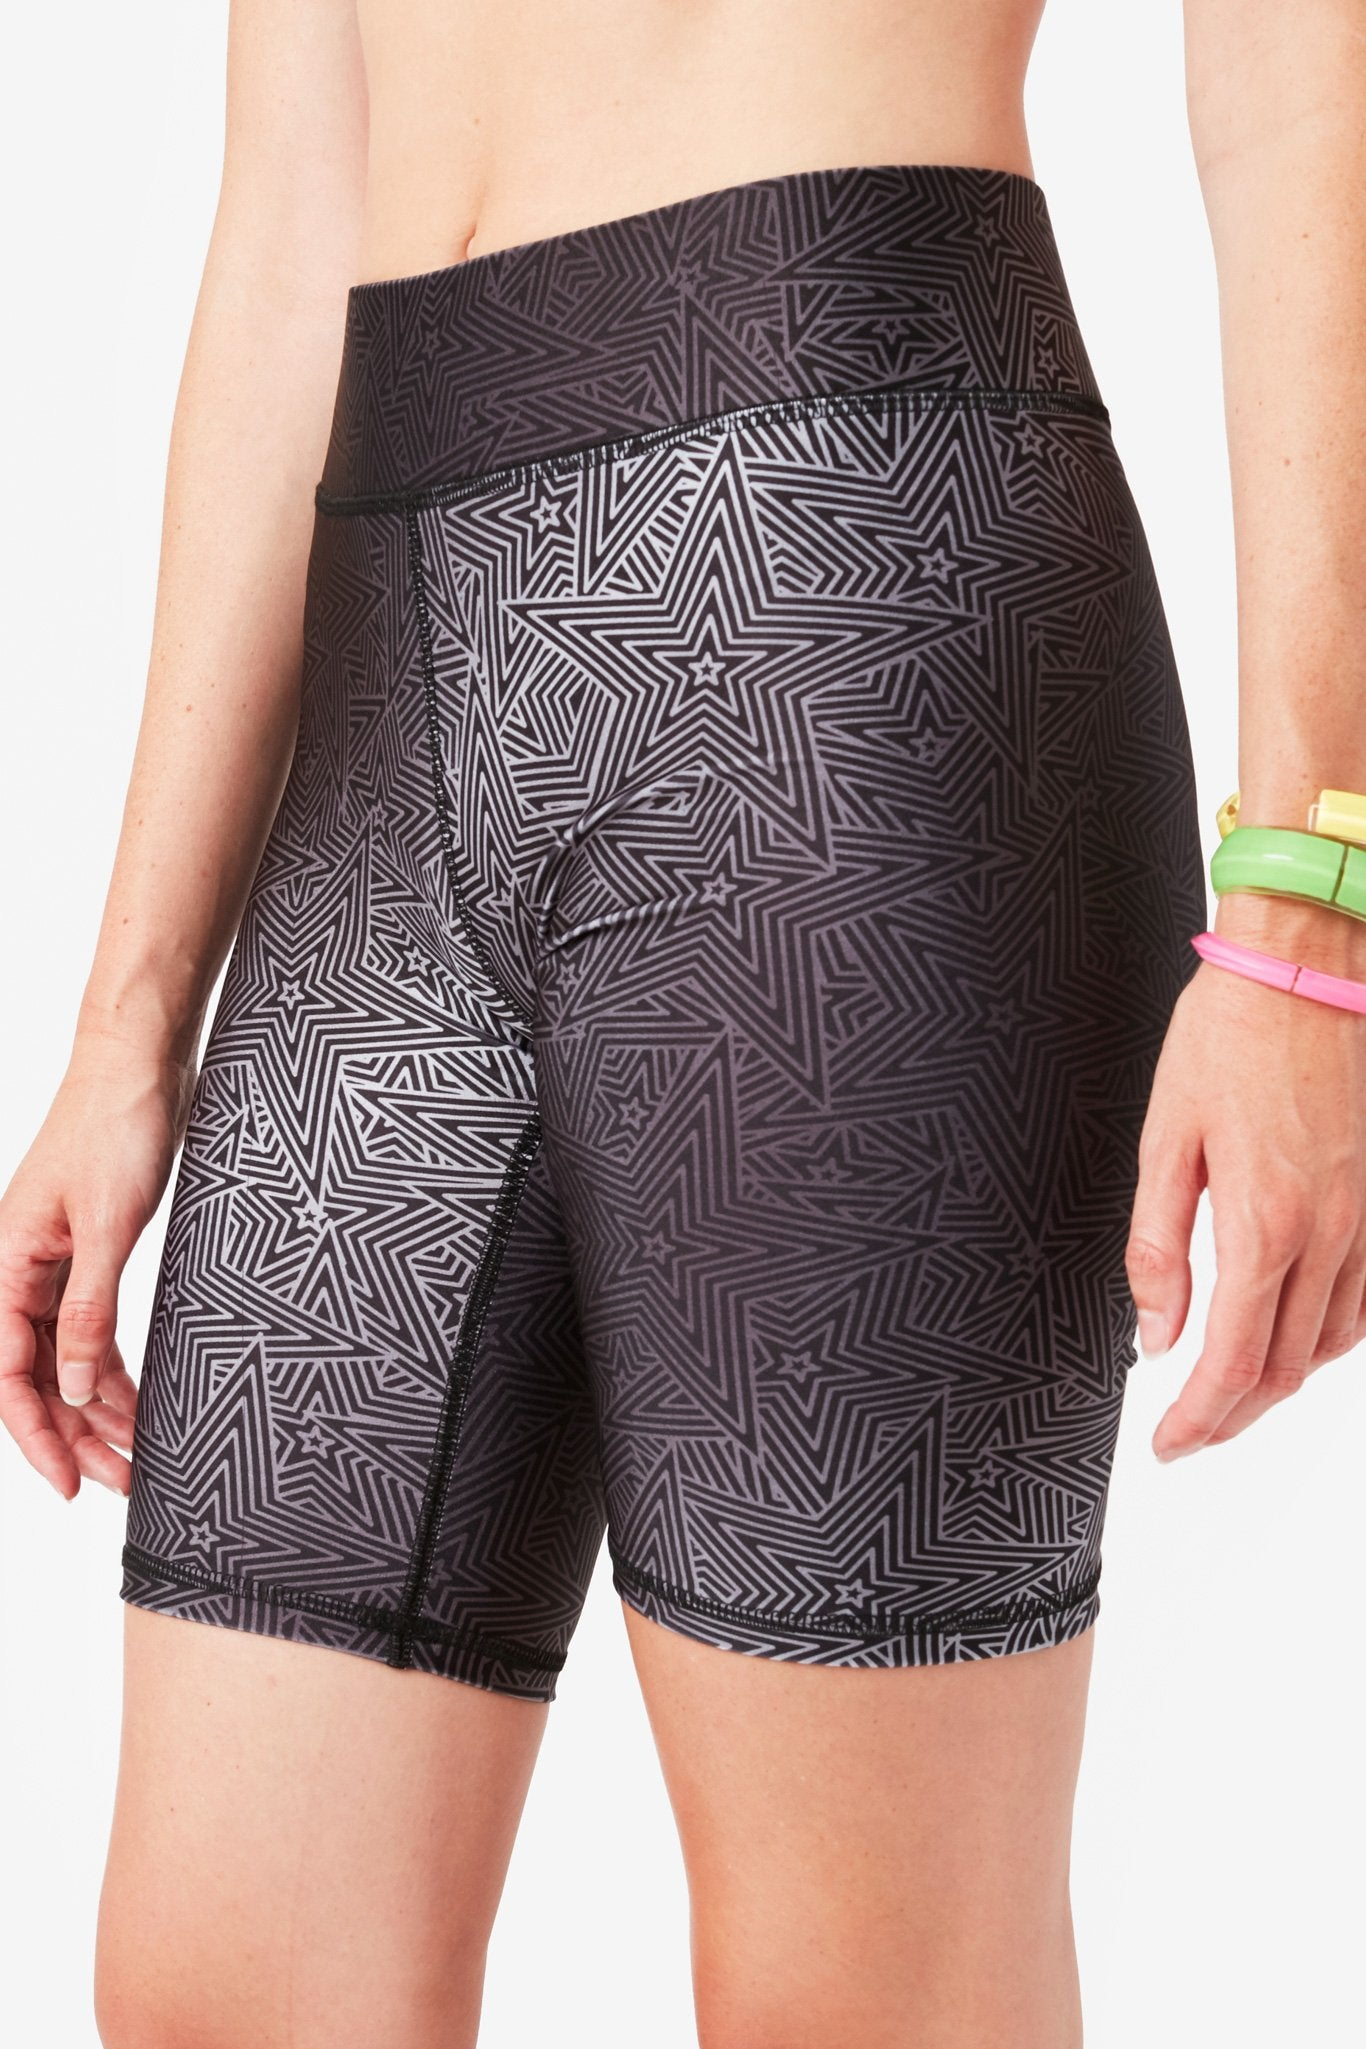 Superstar Moves Hi-Shine Bike Shorts